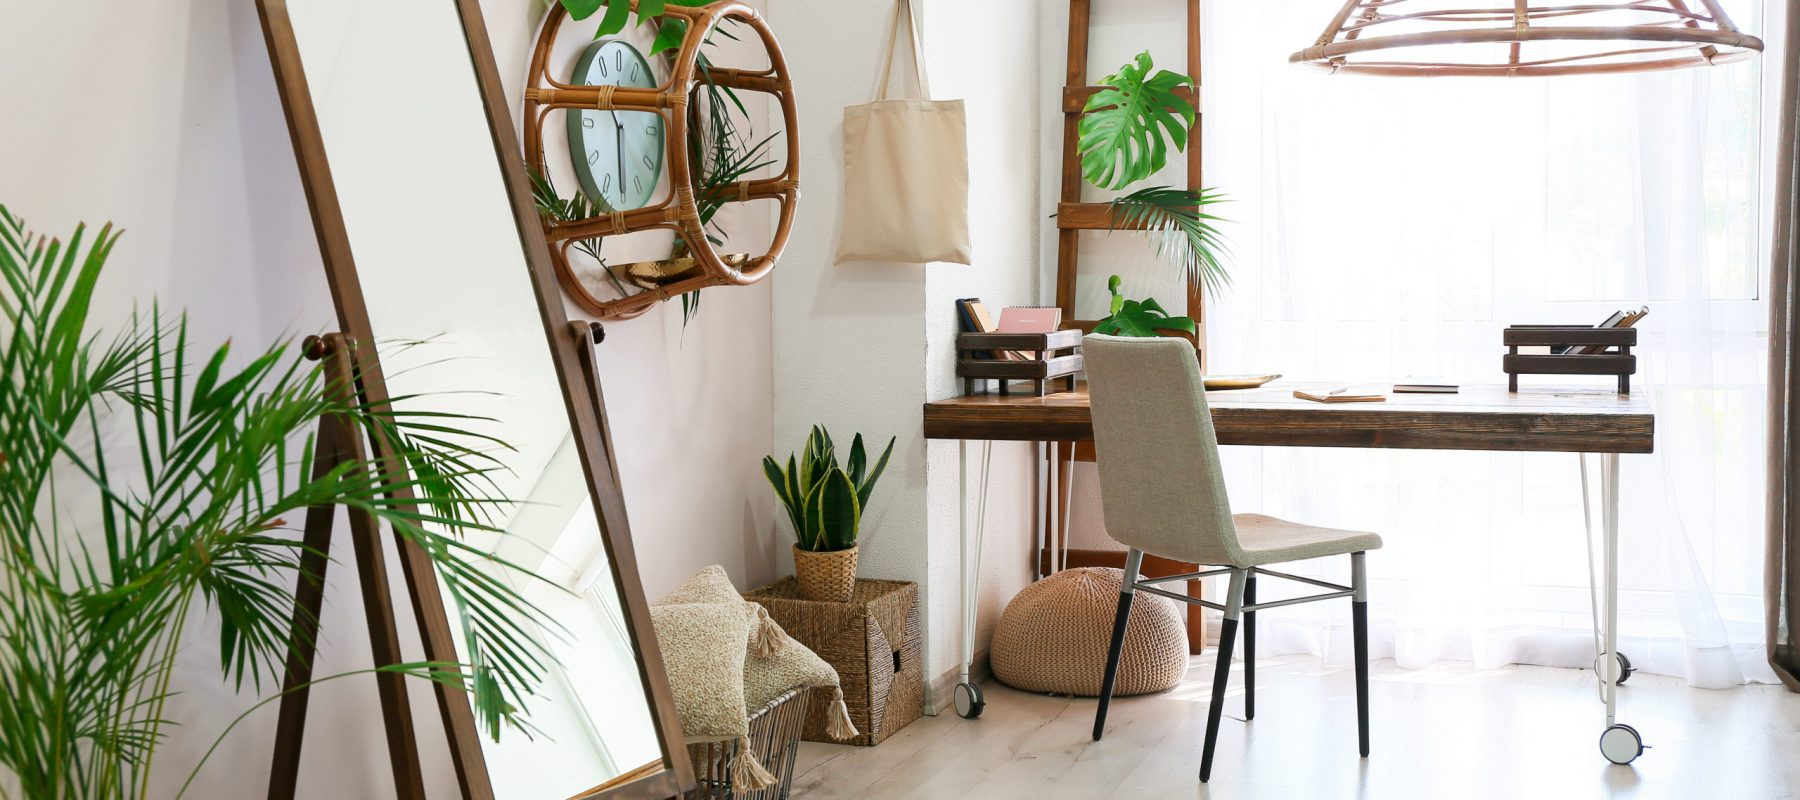 Interior of beautiful comfortable living room with big mirror, table and houseplant